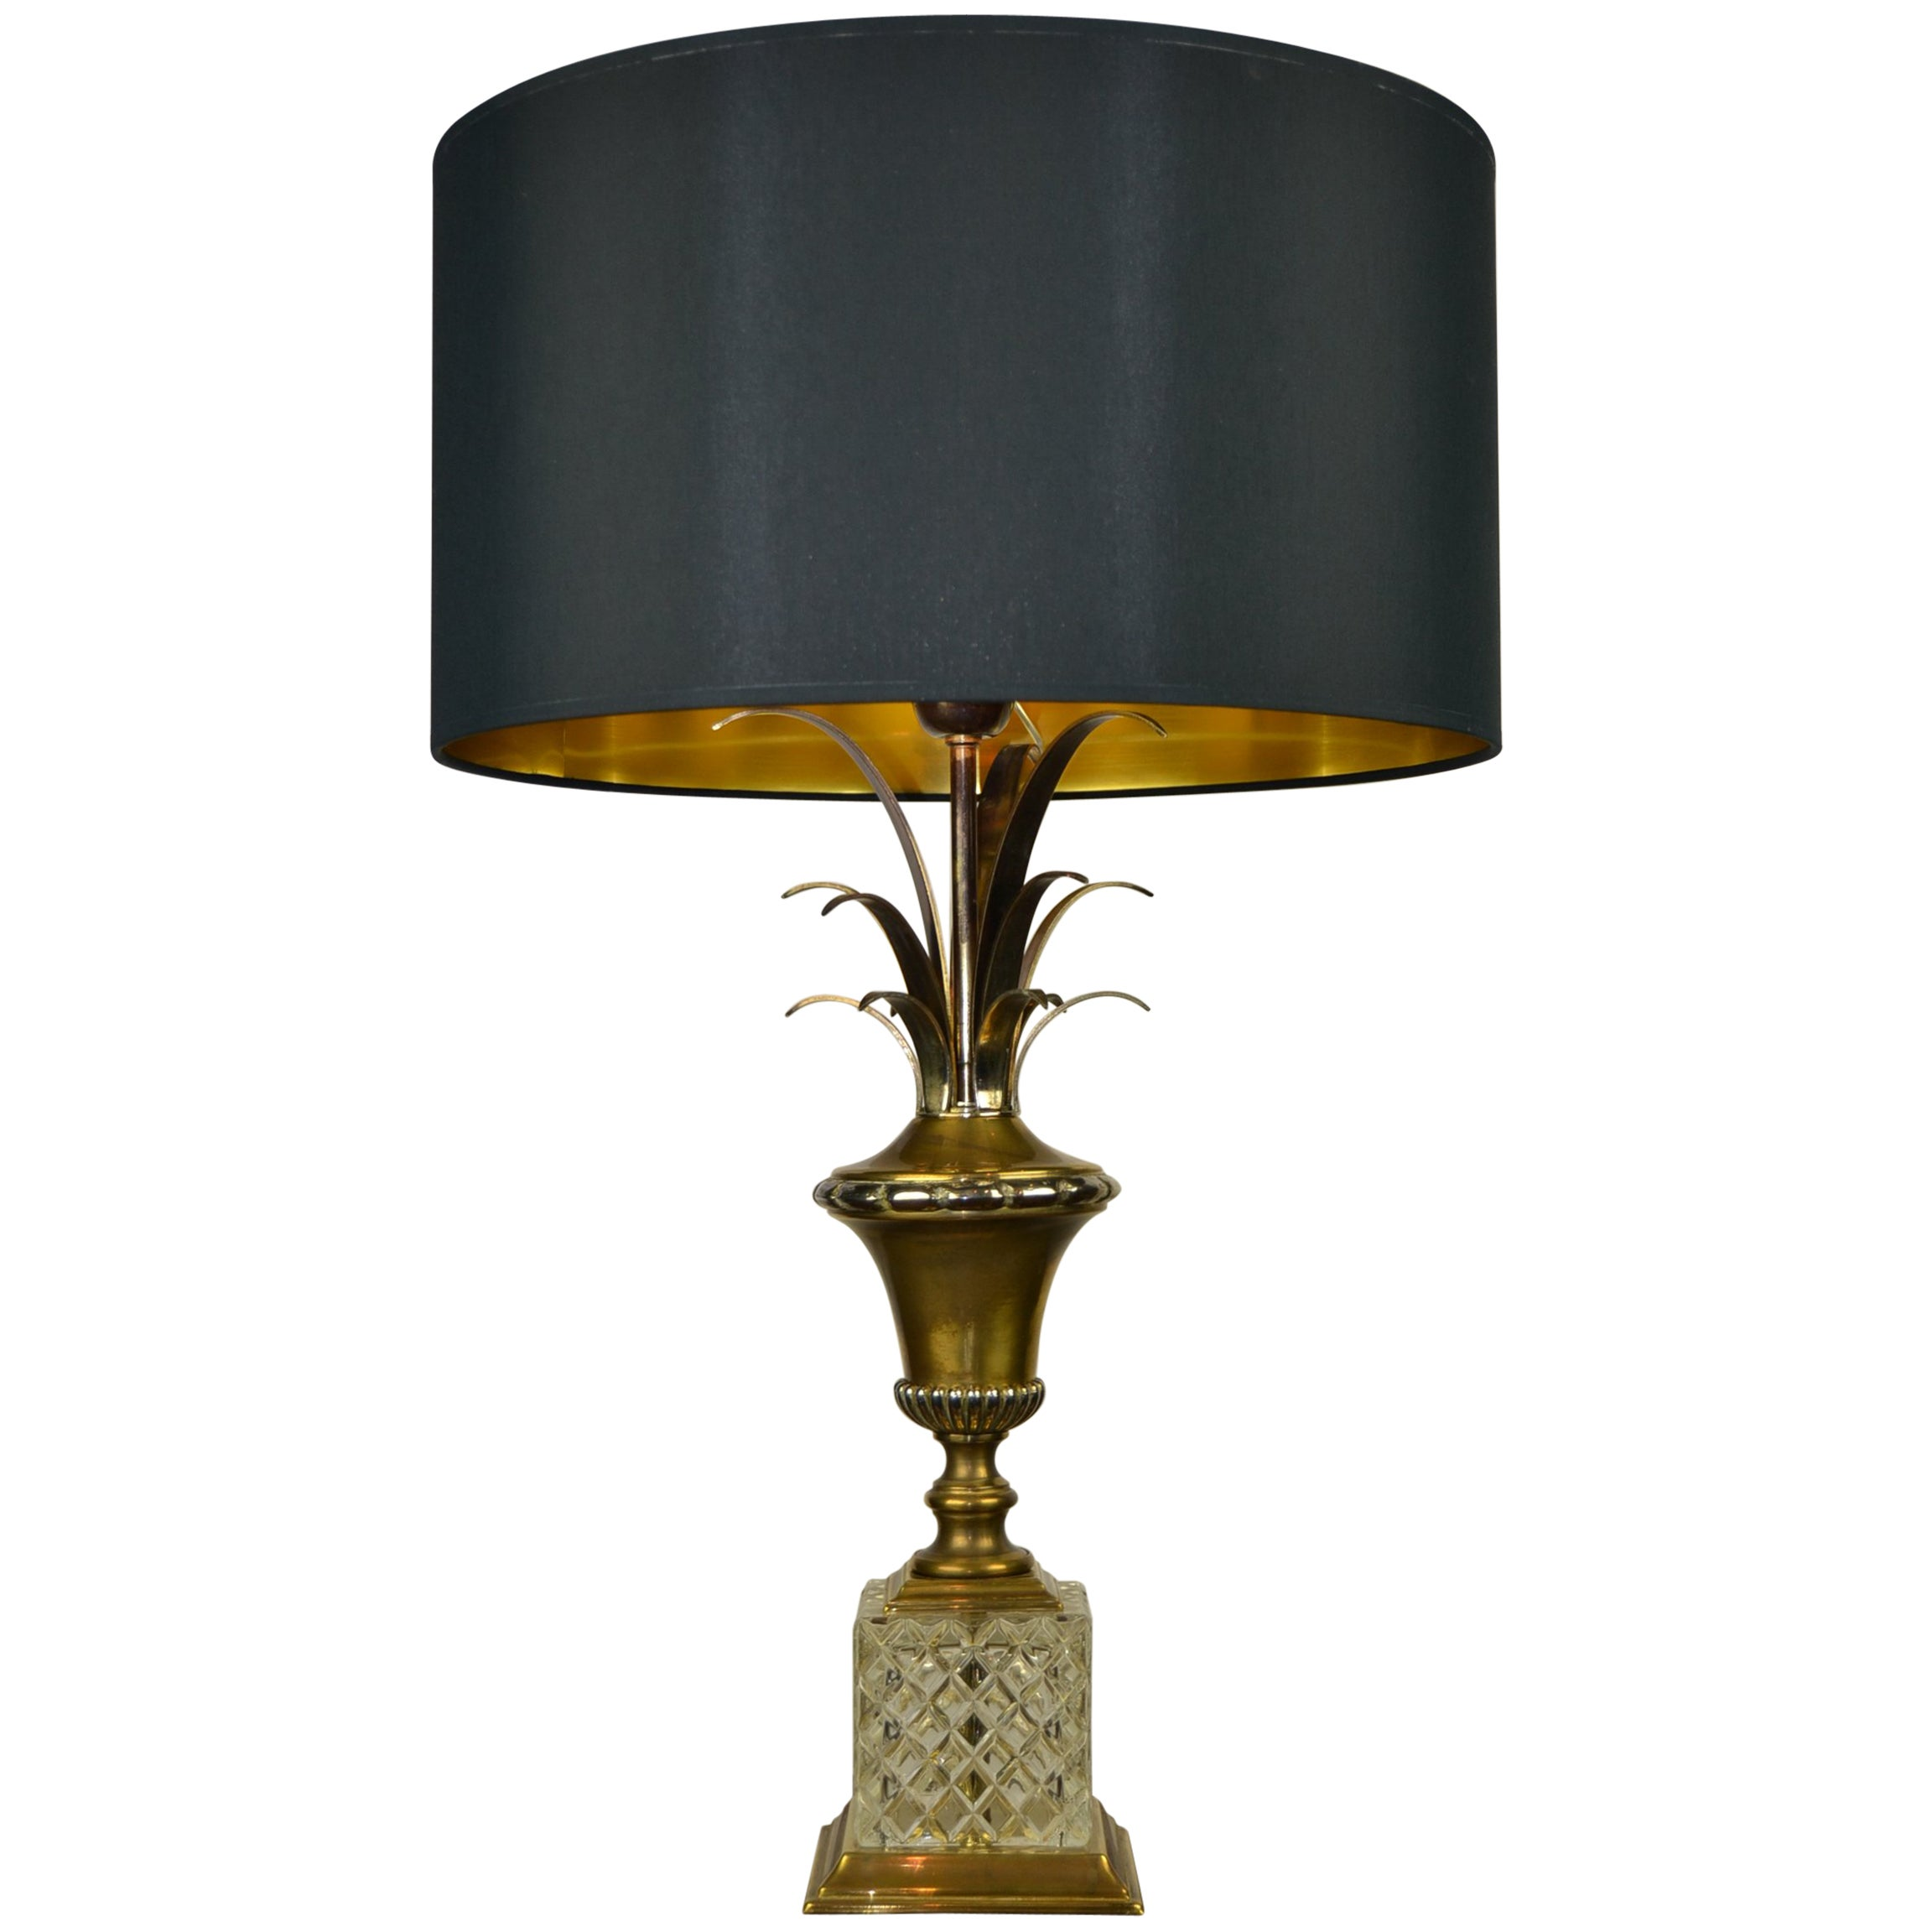 Hollywood Regency Pineapple Leaf Table Lamp, Gilt Brass and Crystal, France